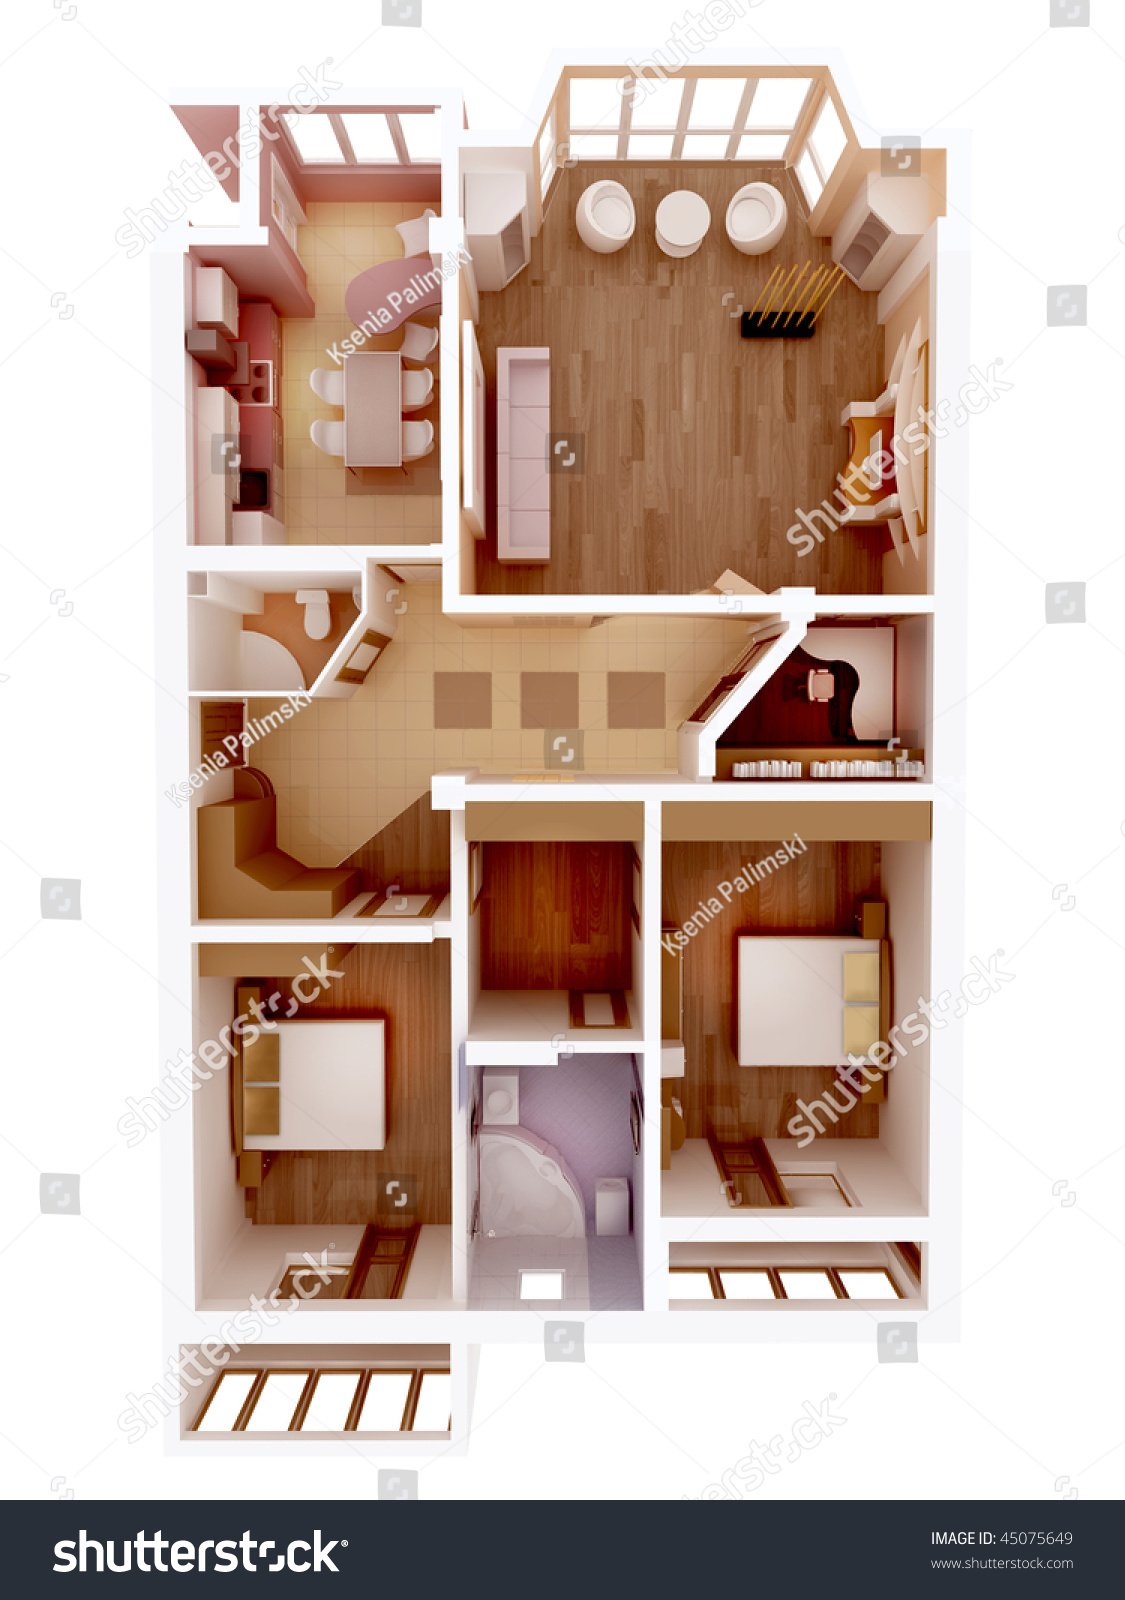 Plan Apartment Clear Interior Illustration